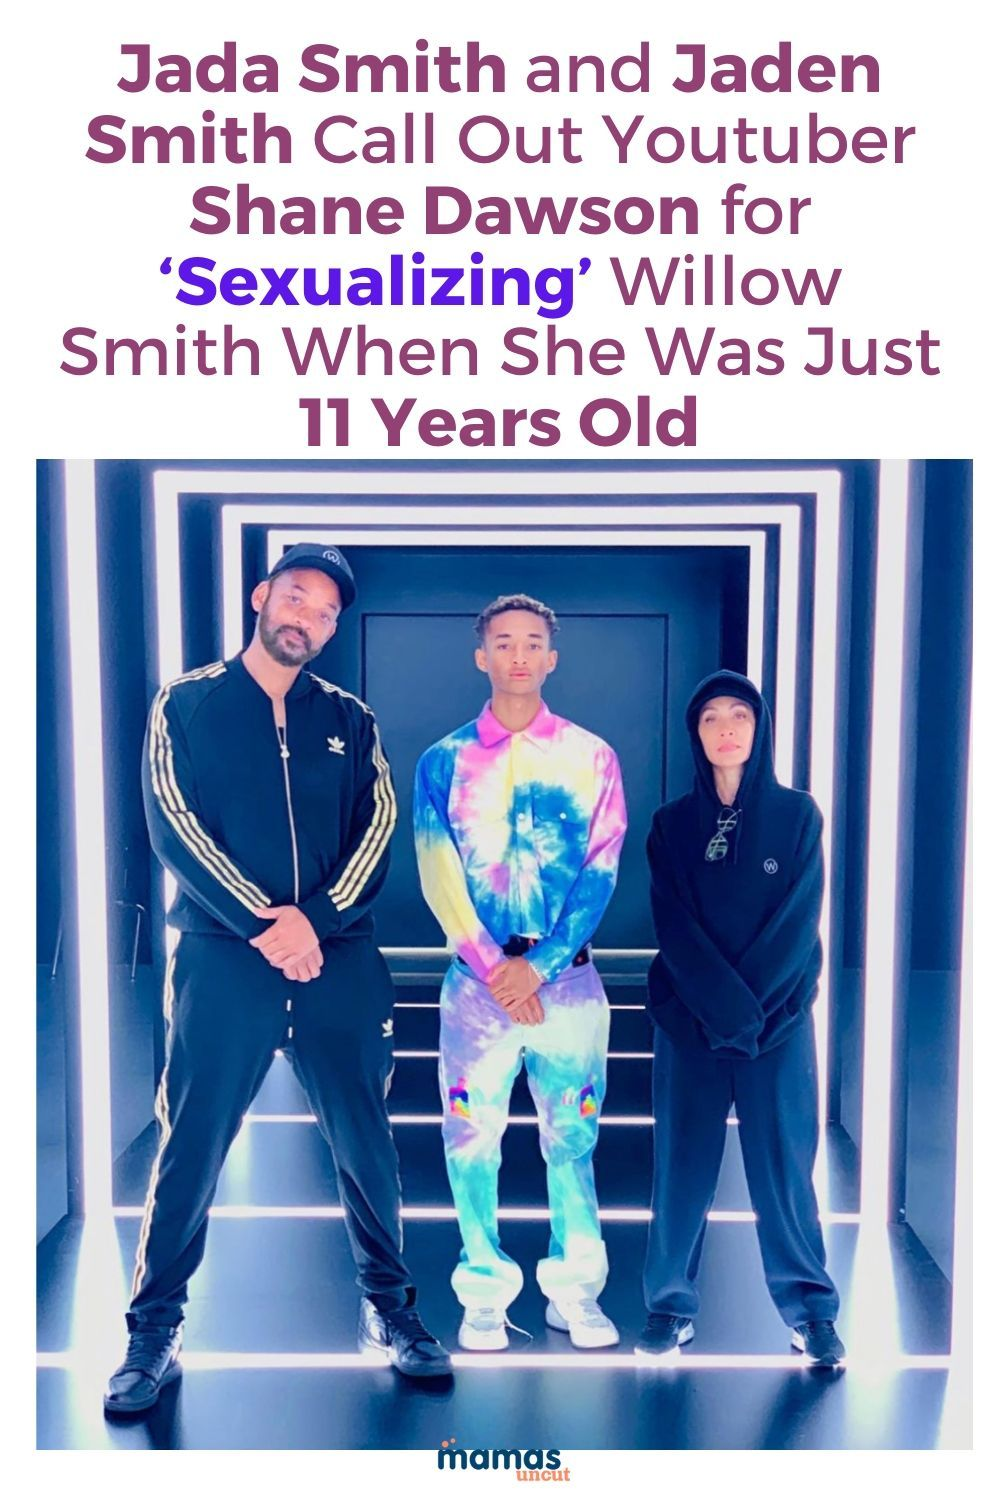 Shane Dawson Called Out By the Smiths for Sexualizing Willow  Shane Dawson has been a popular YouTuber for years. Now Jaden Smith and Jada Pinkett Smith are calling out his problematic content.  #shanedawson #willowsmith #jadapinkettsmith #Jadensmith